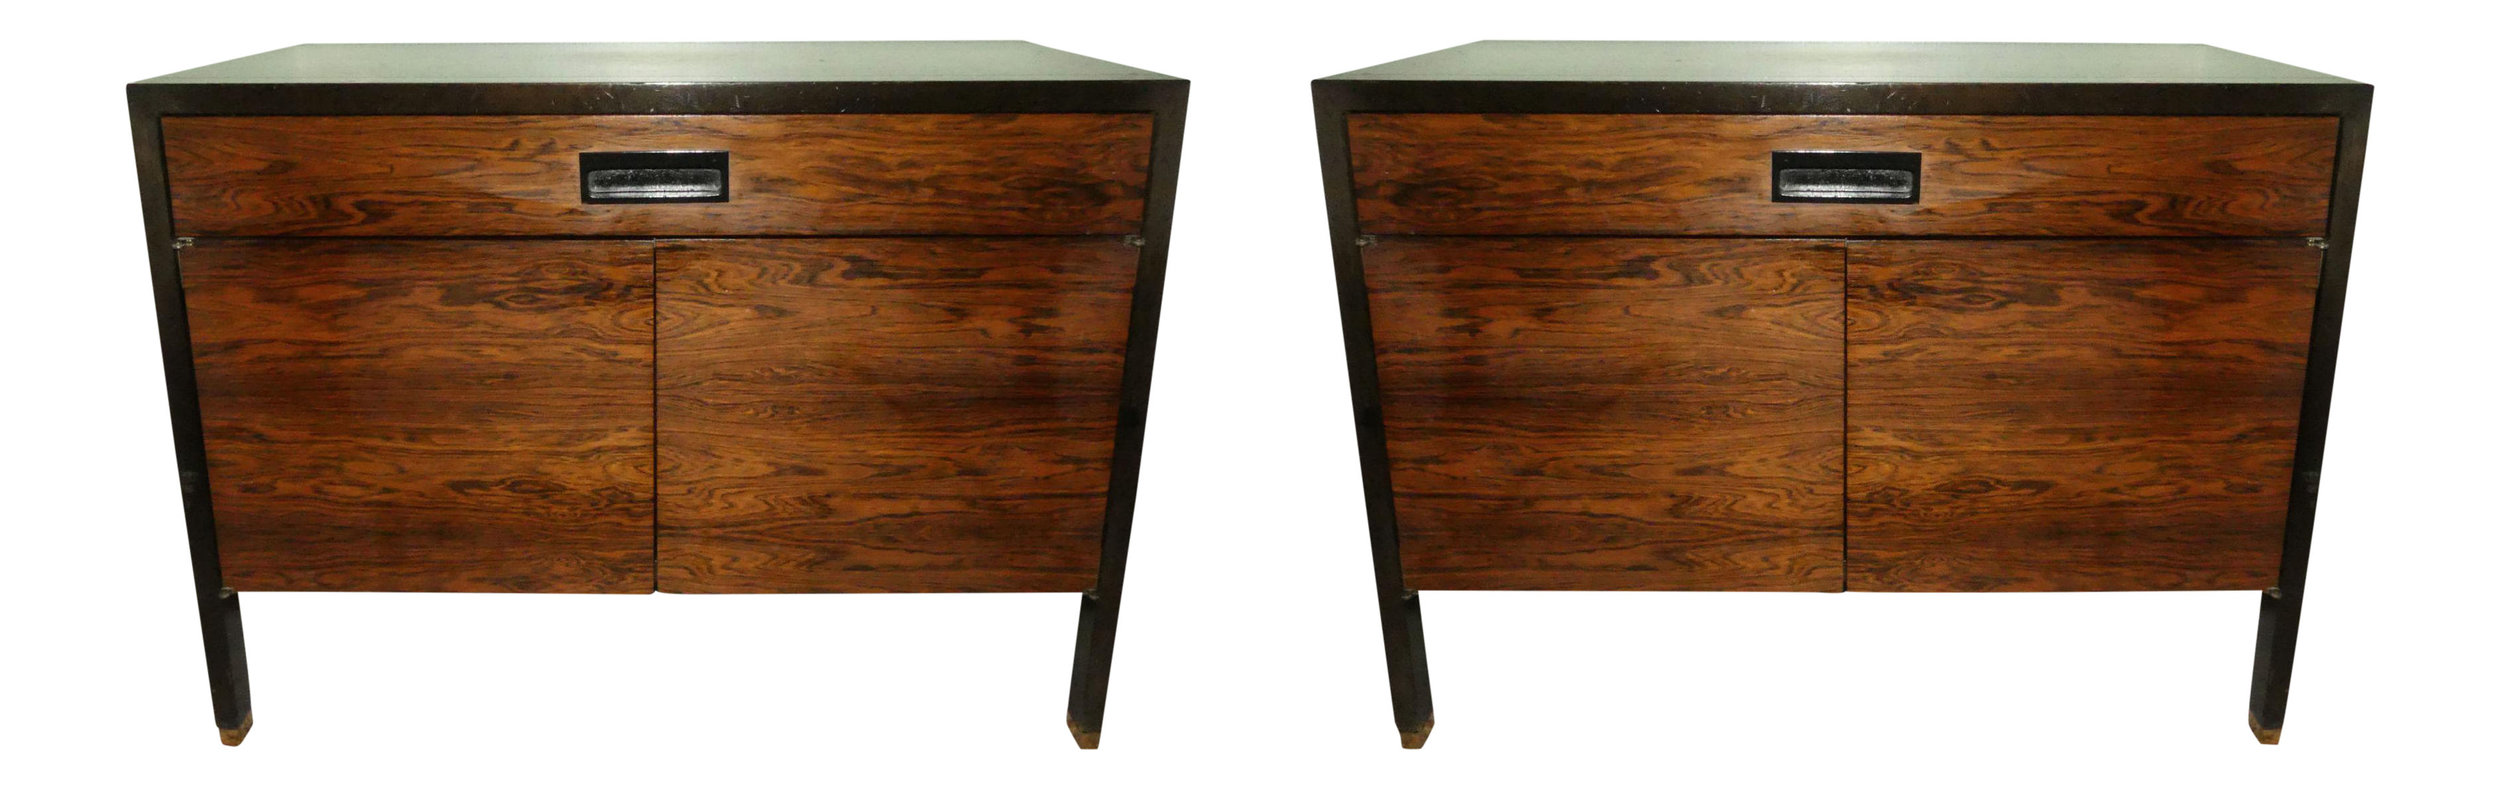 Pair of 2 Mid-Century Modern Harvey Probber Rosewood Nightstands